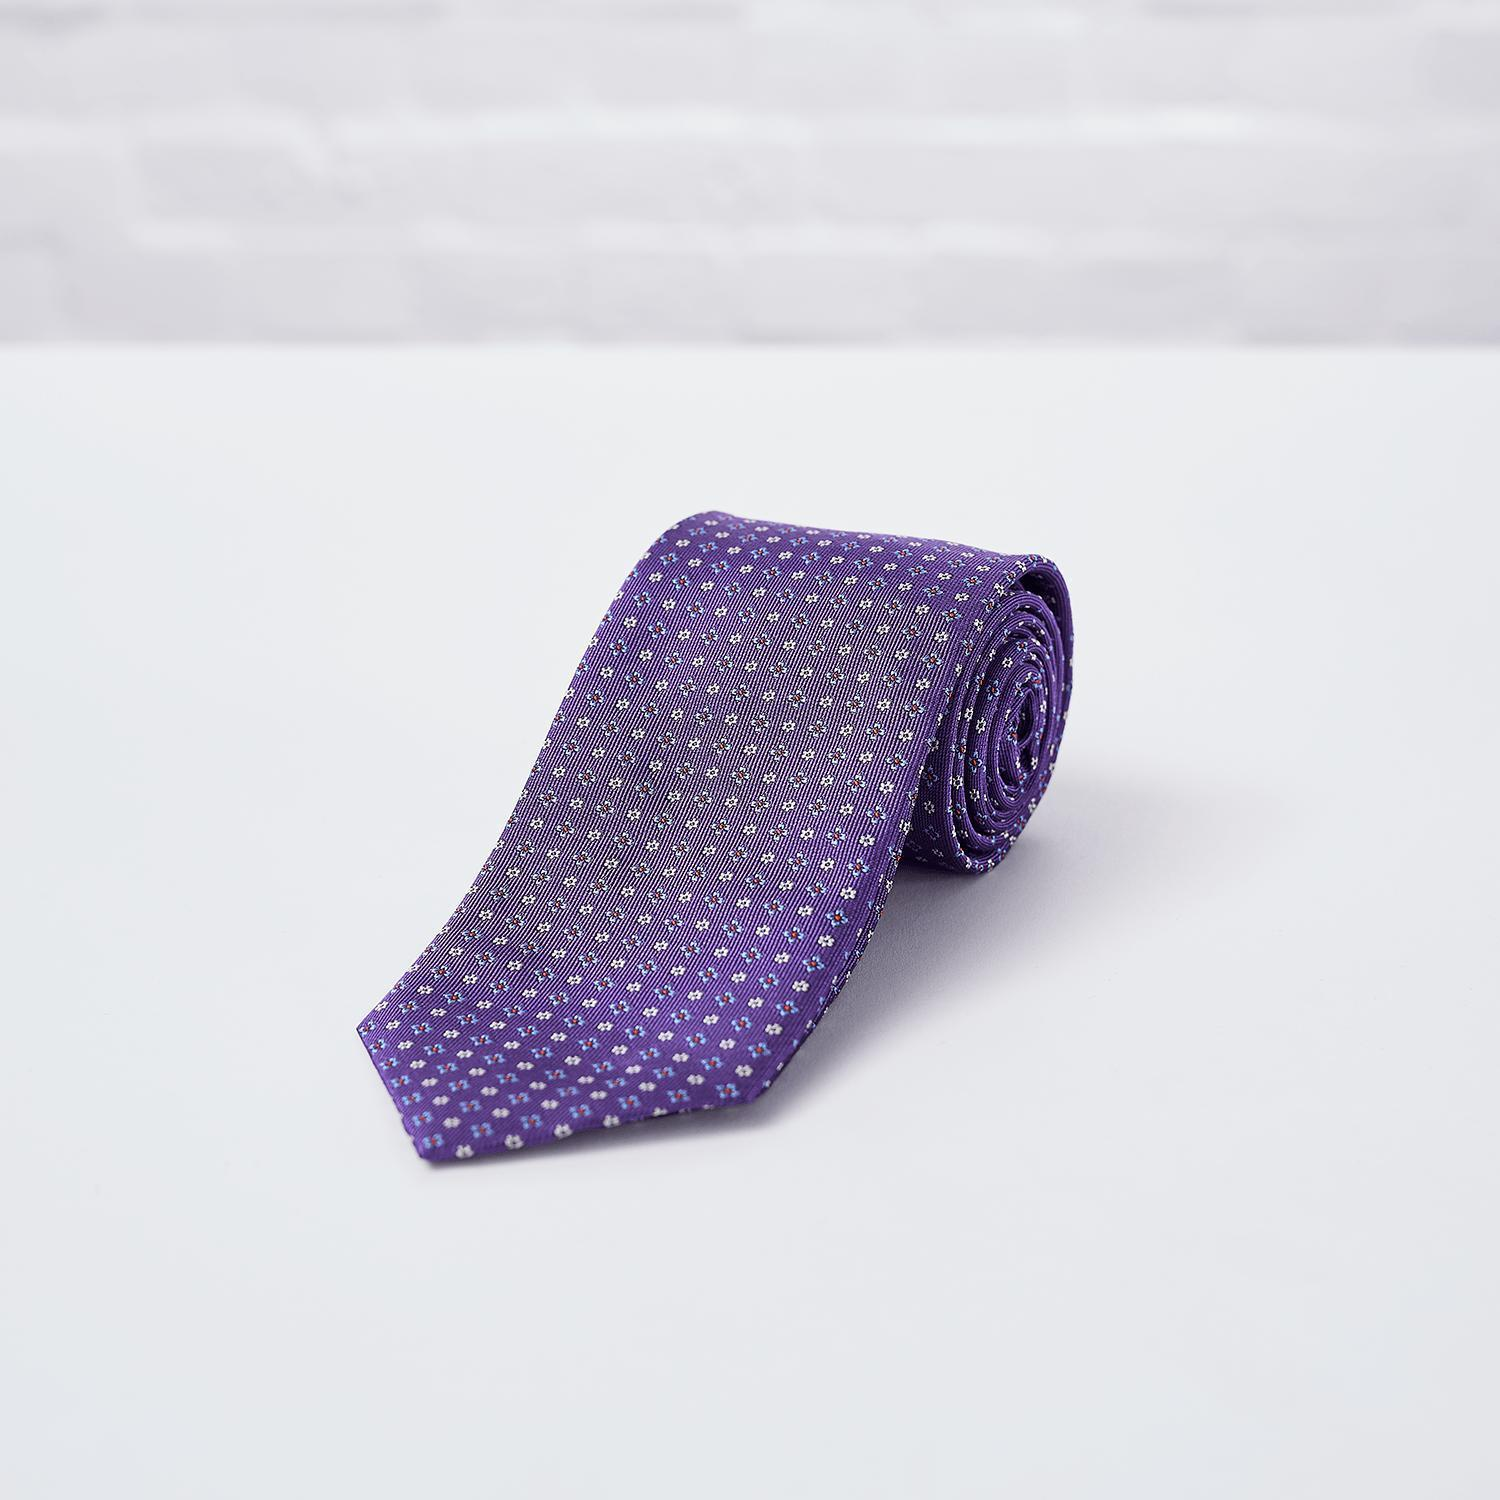 Purple Floral Woven Silk Tie - British Made